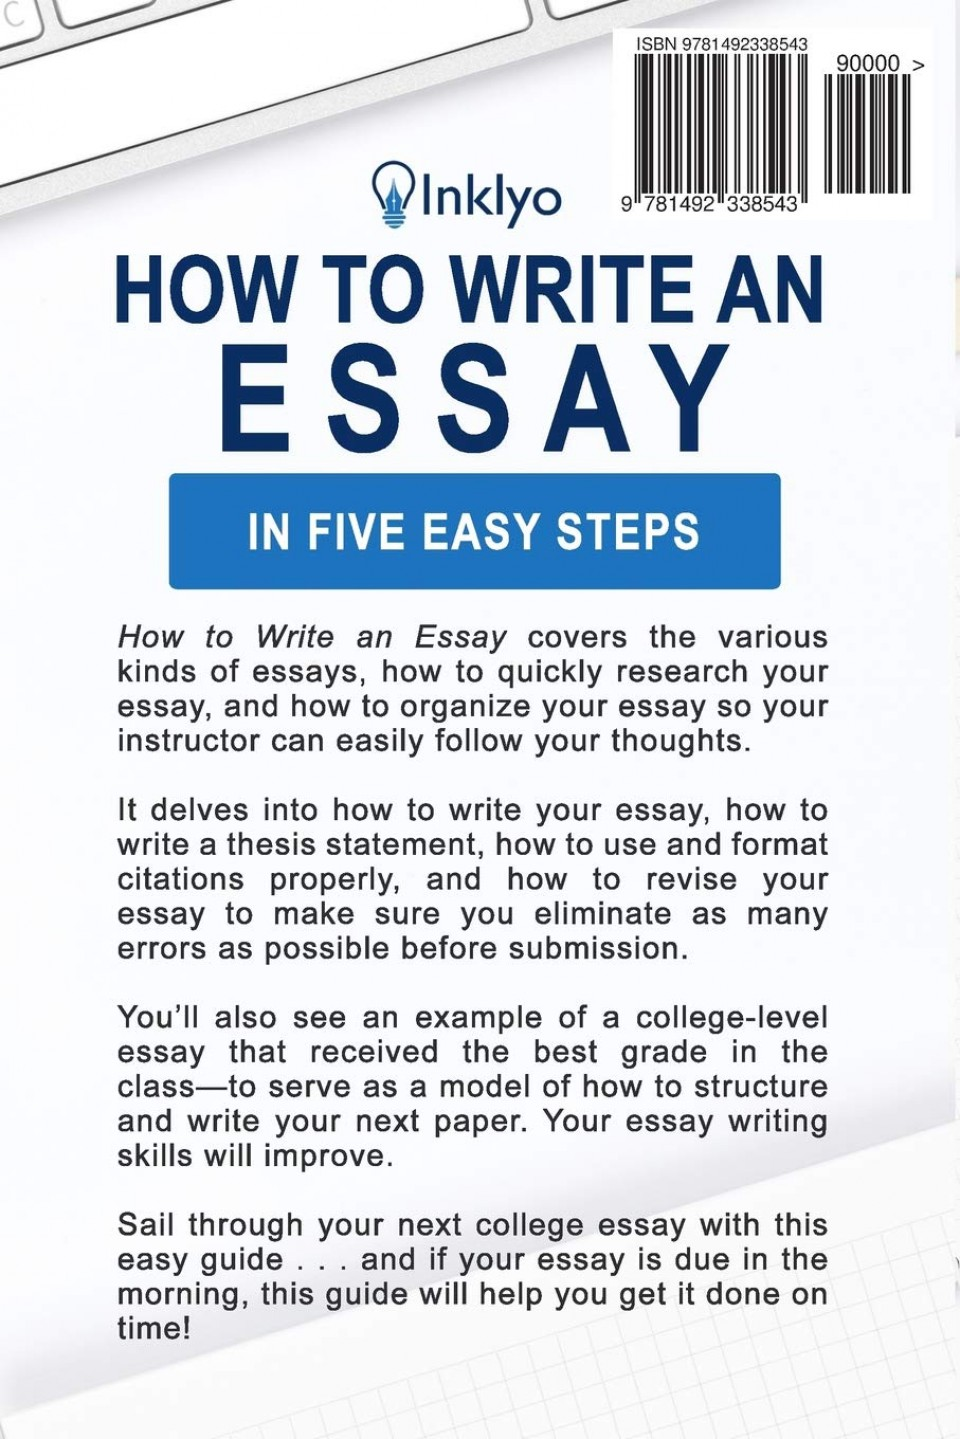 003 How To Write Essay Example Archaicawful A In College Level Business Narrative Outline 960